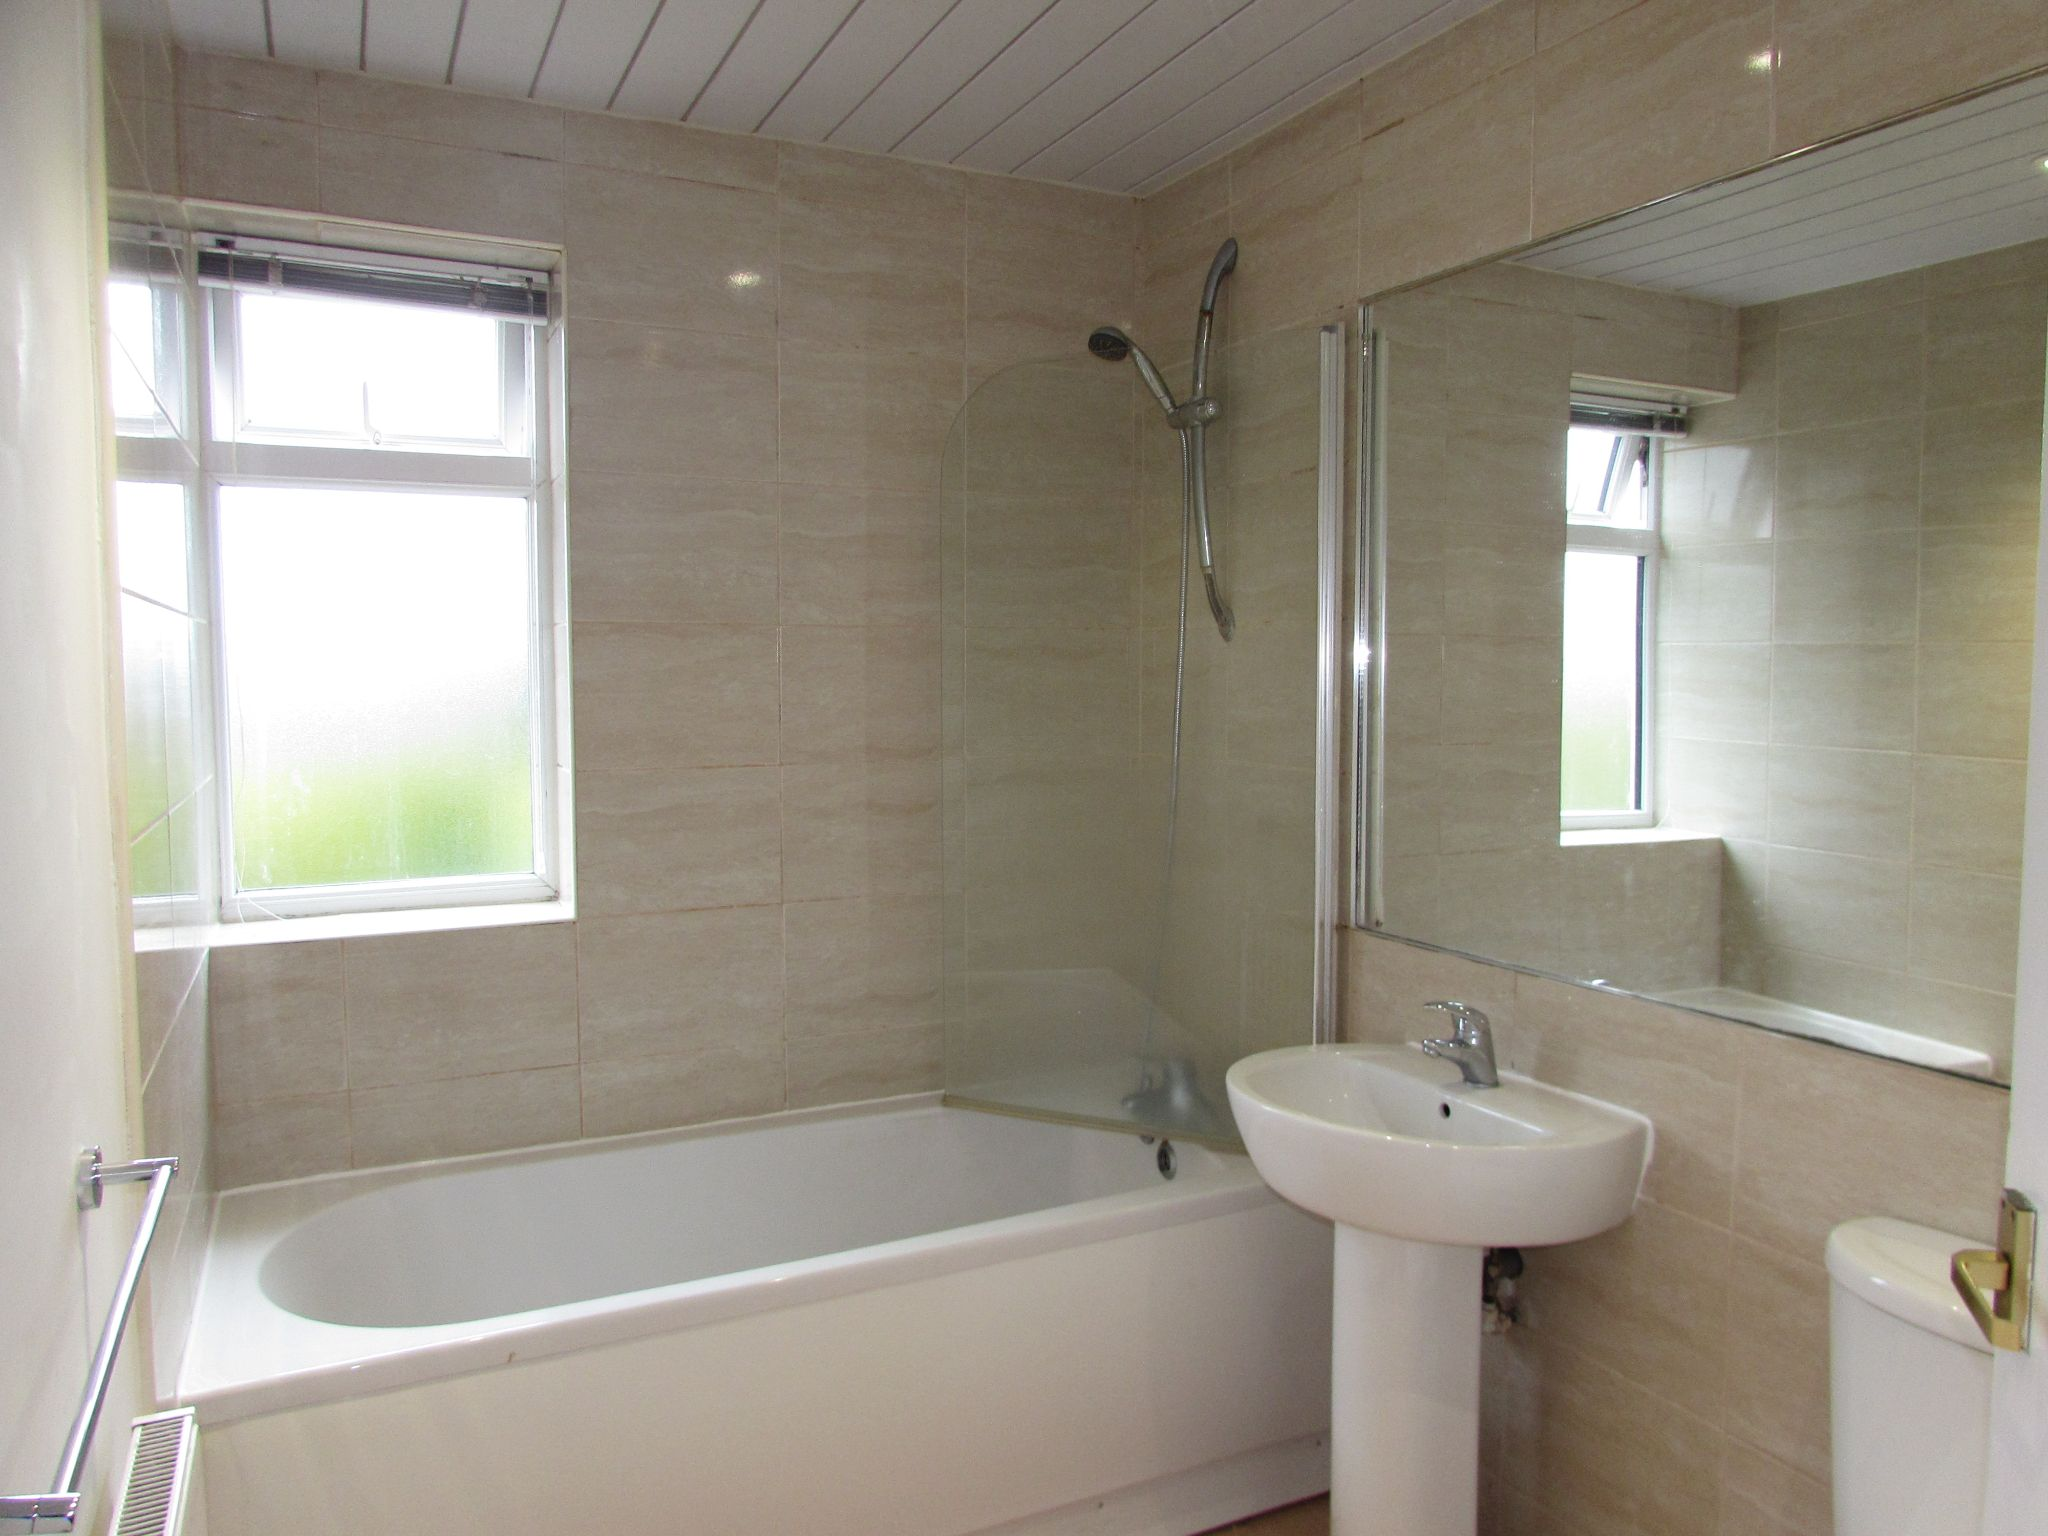 4 Bedroom Detached House To Rent - Family Bathroom